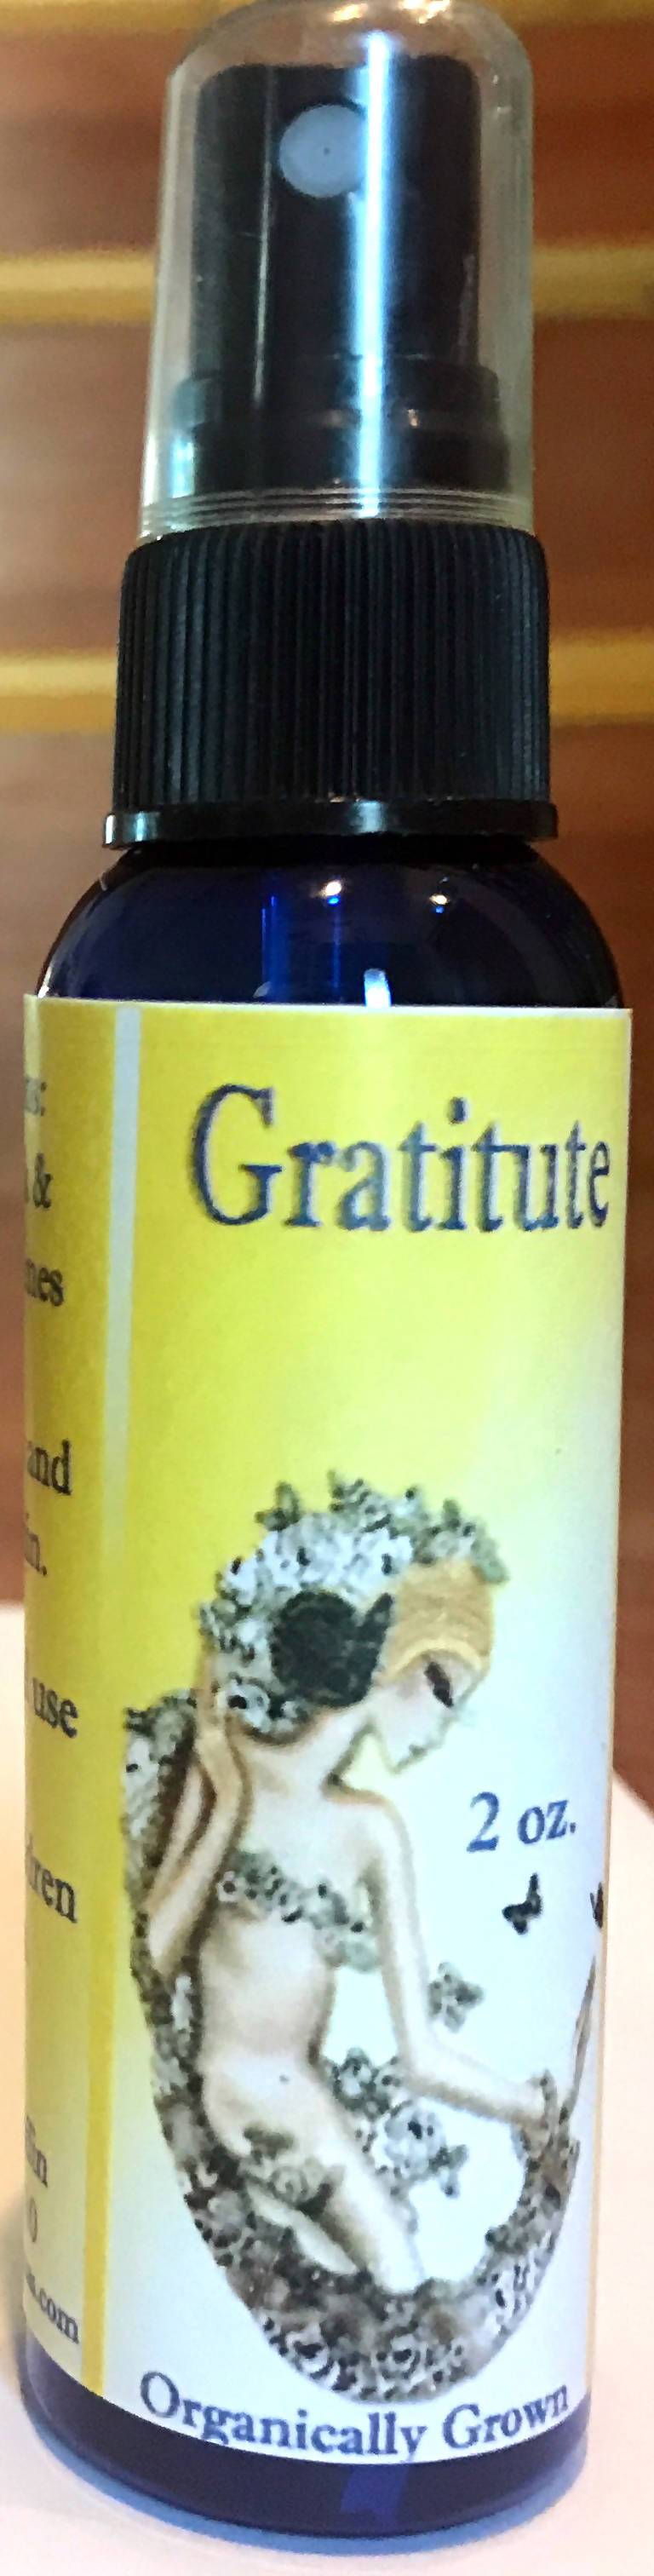 Gratitude (Marigold mint scent) 2 oz Spray